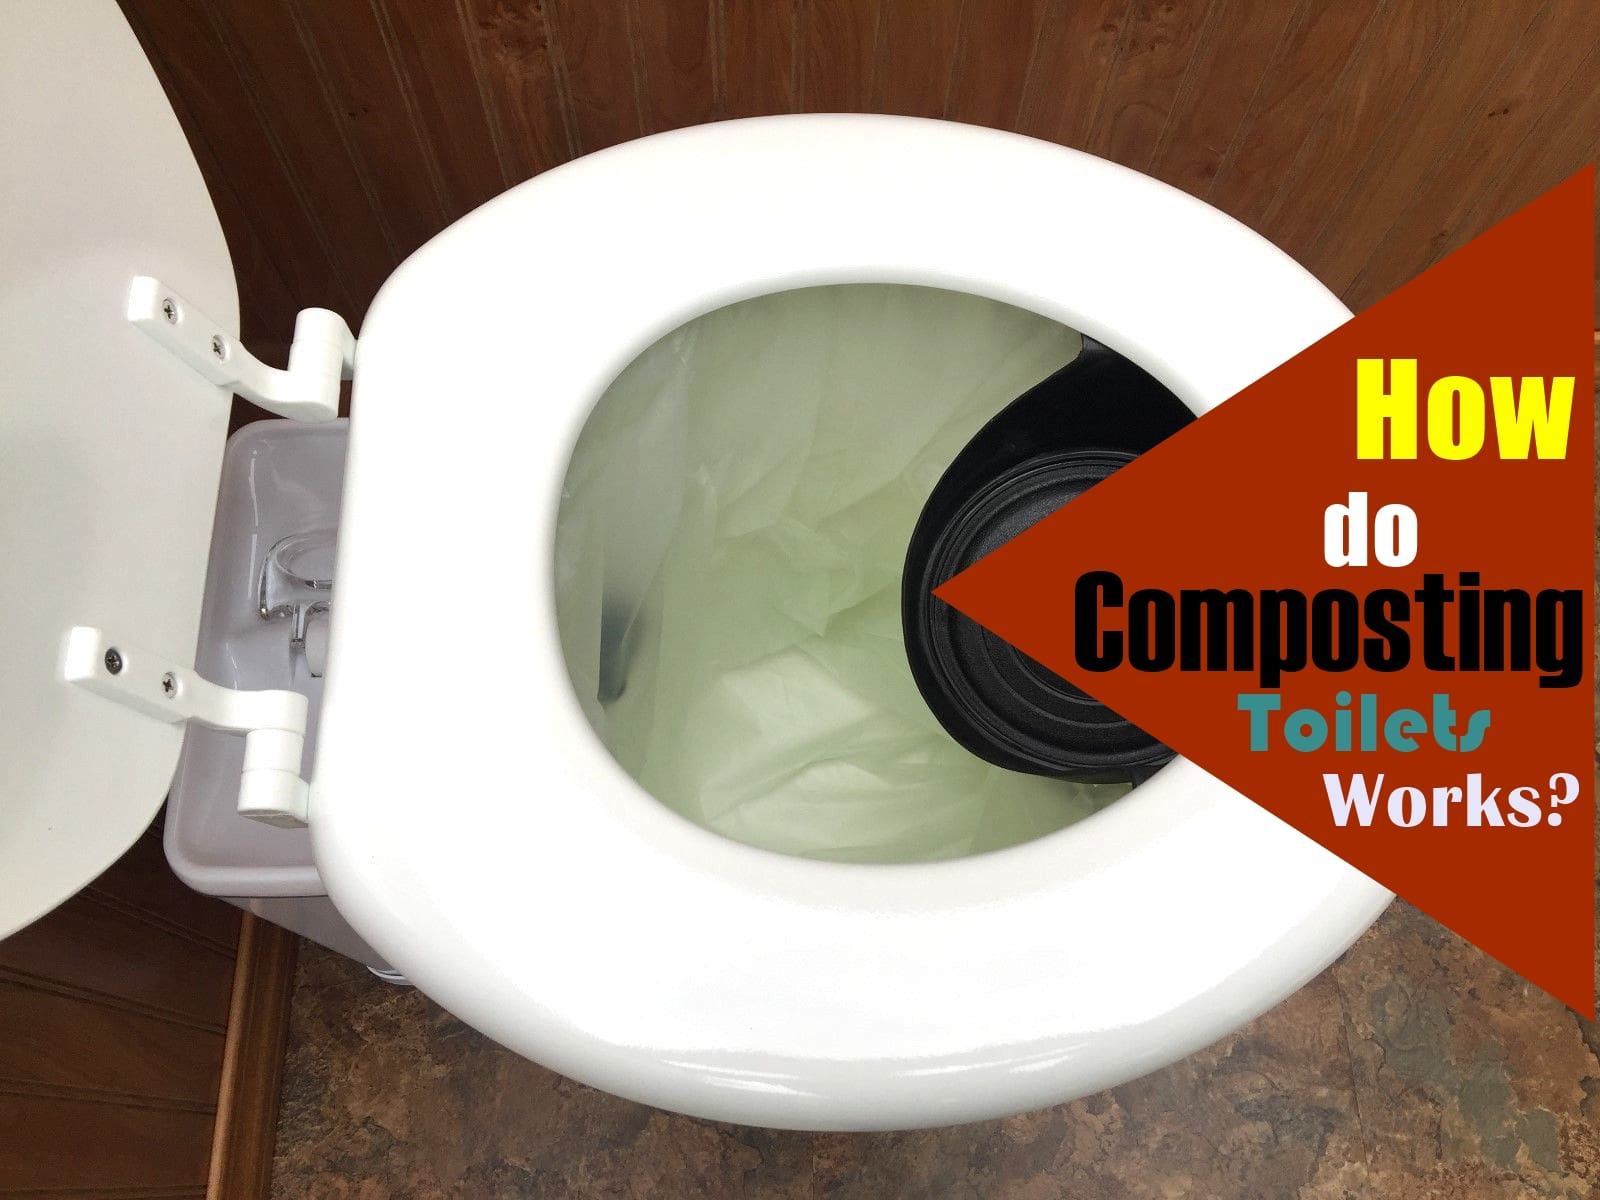 Composting Toilets: How Do They Work?